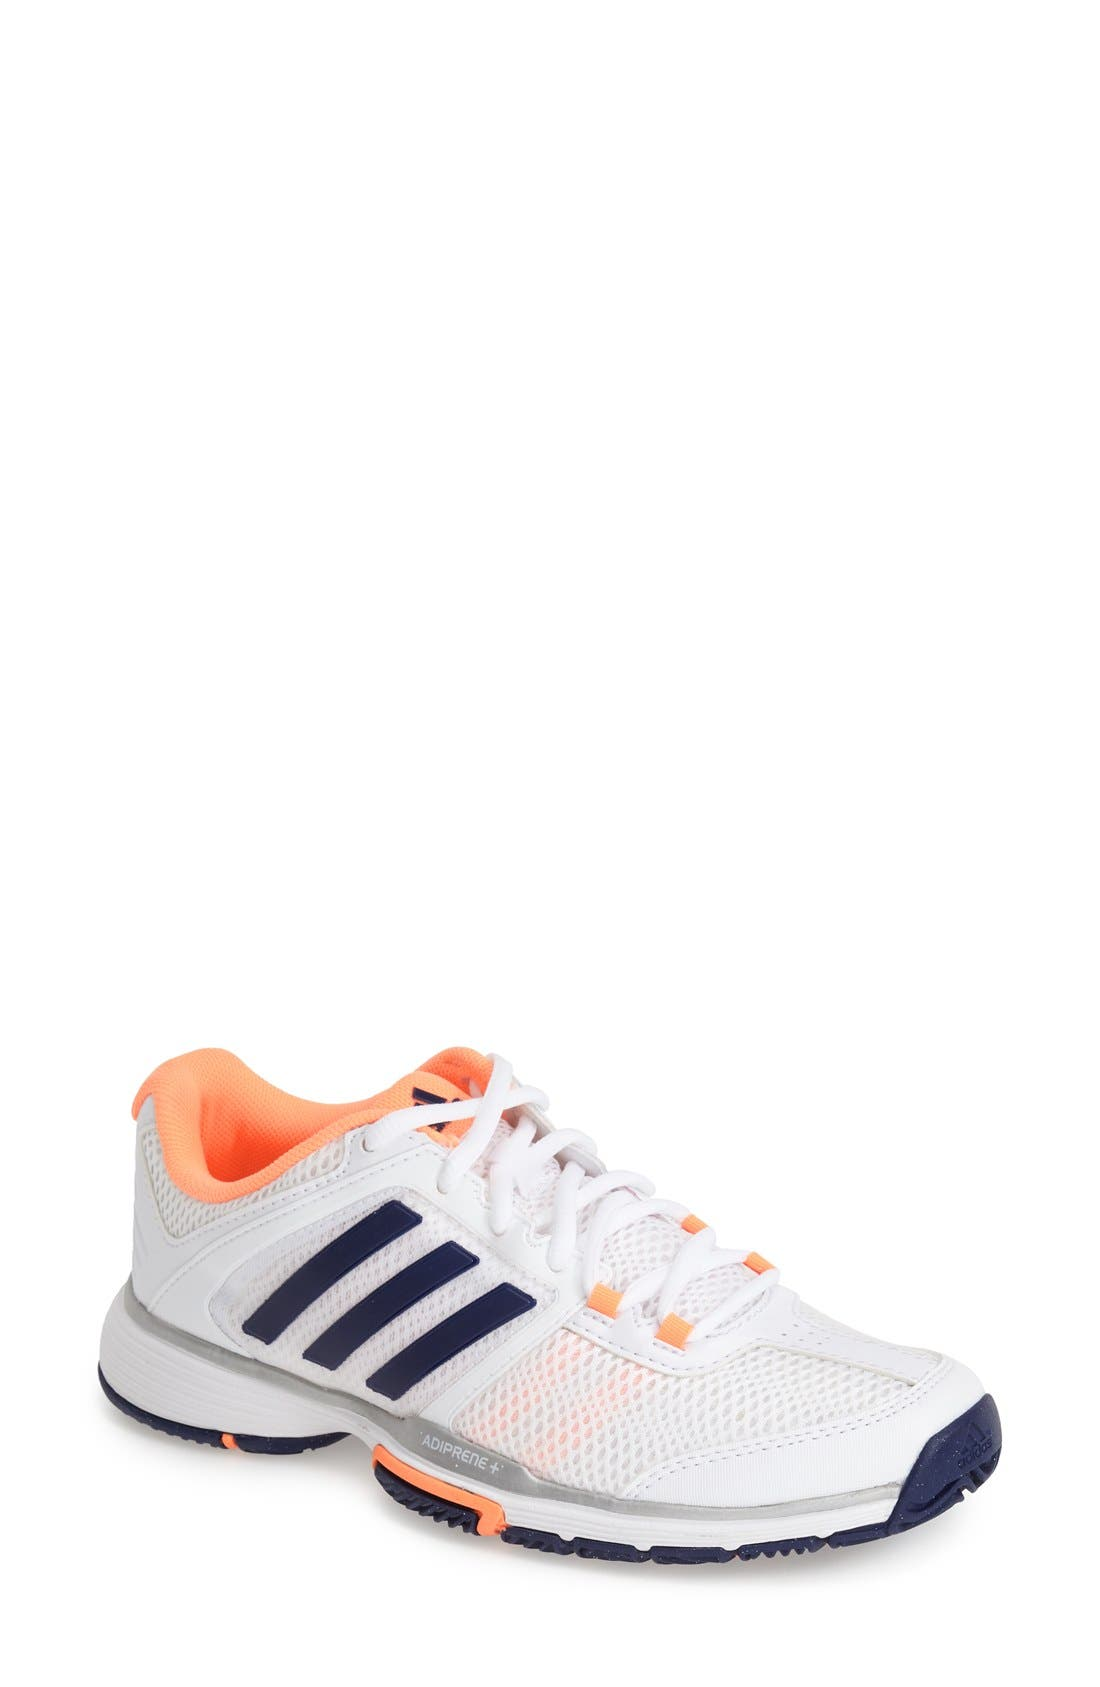 Alternate Image 1 Selected - adidas 'adiPower Barricade Team 4' Tennis Shoe (Women)